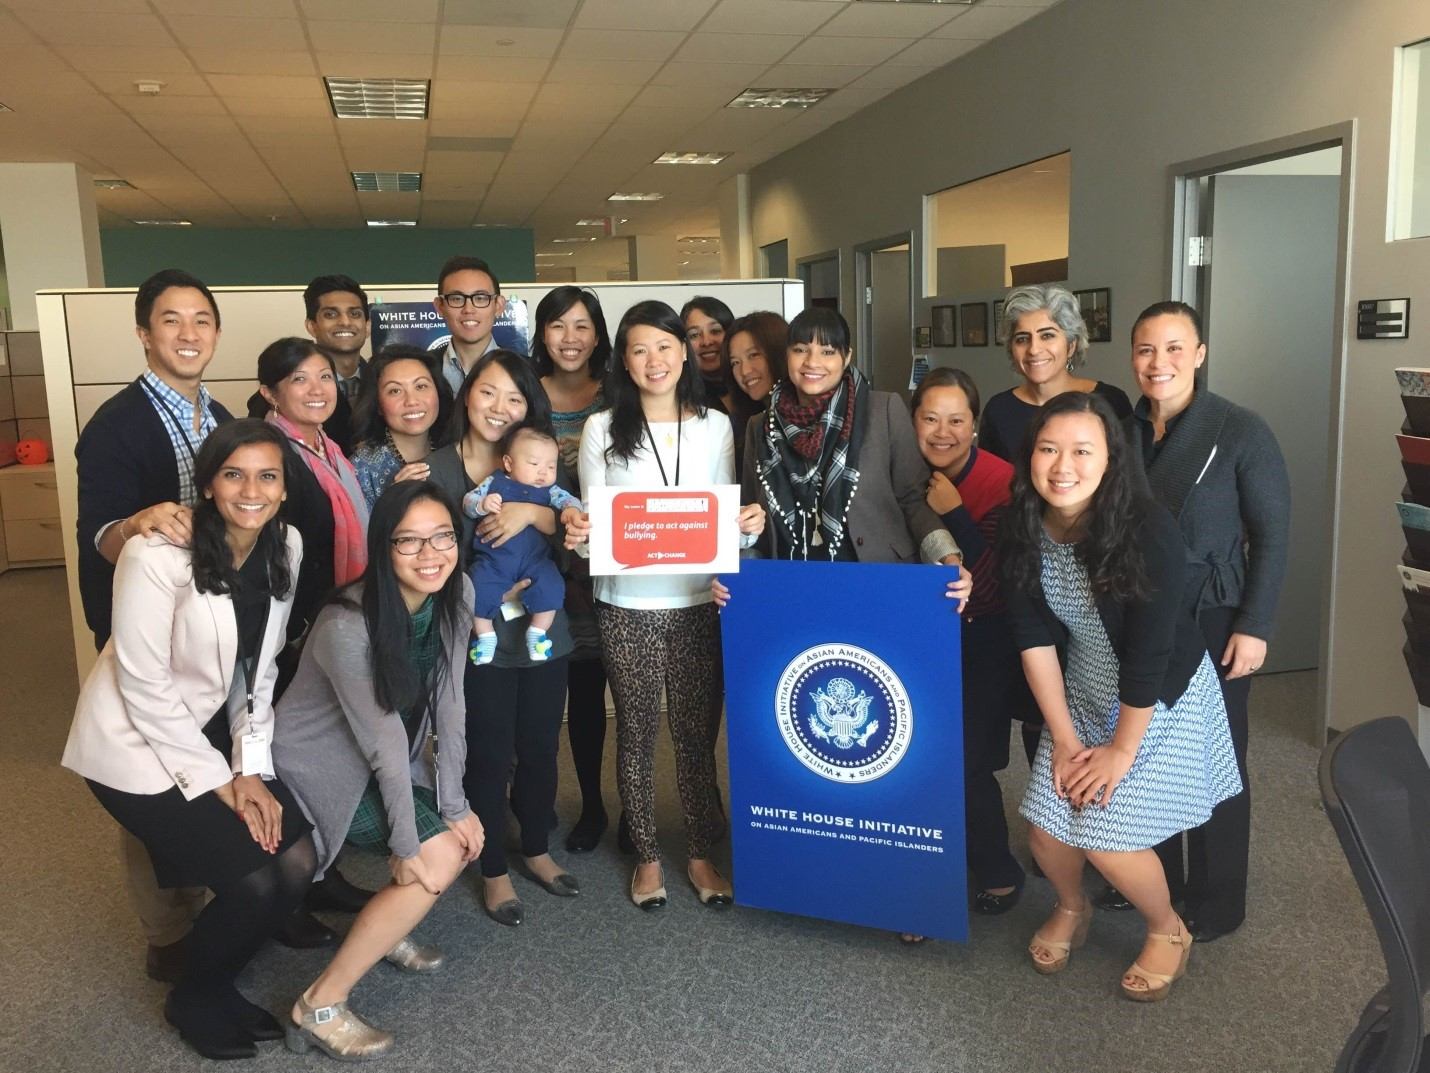 Staff of the White House Initiative on Asian Americans and Pacific Islanders show their support for #ActToChange, a public awareness campaign to combat bullying, October 21, 2015.